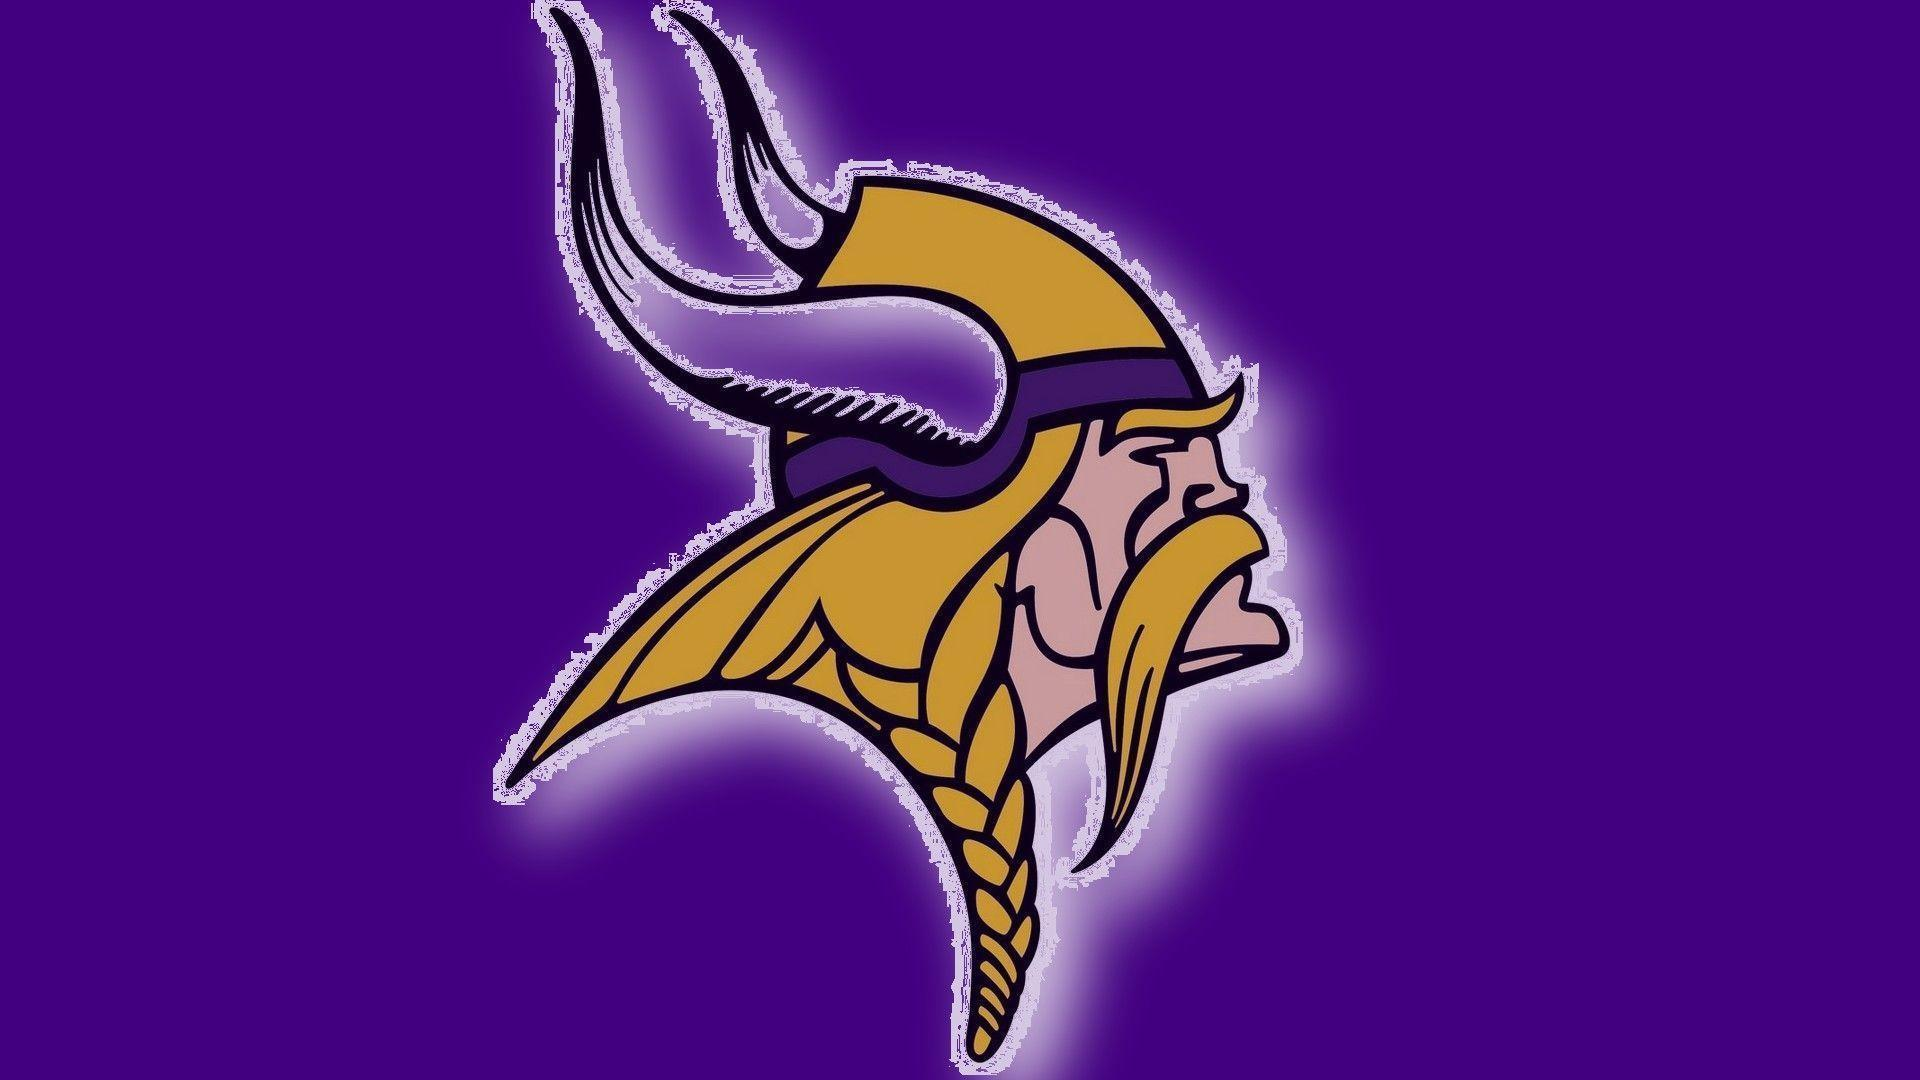 Minnesota Vikings Hd Wallpapers 25656 Images | wallgraf.com